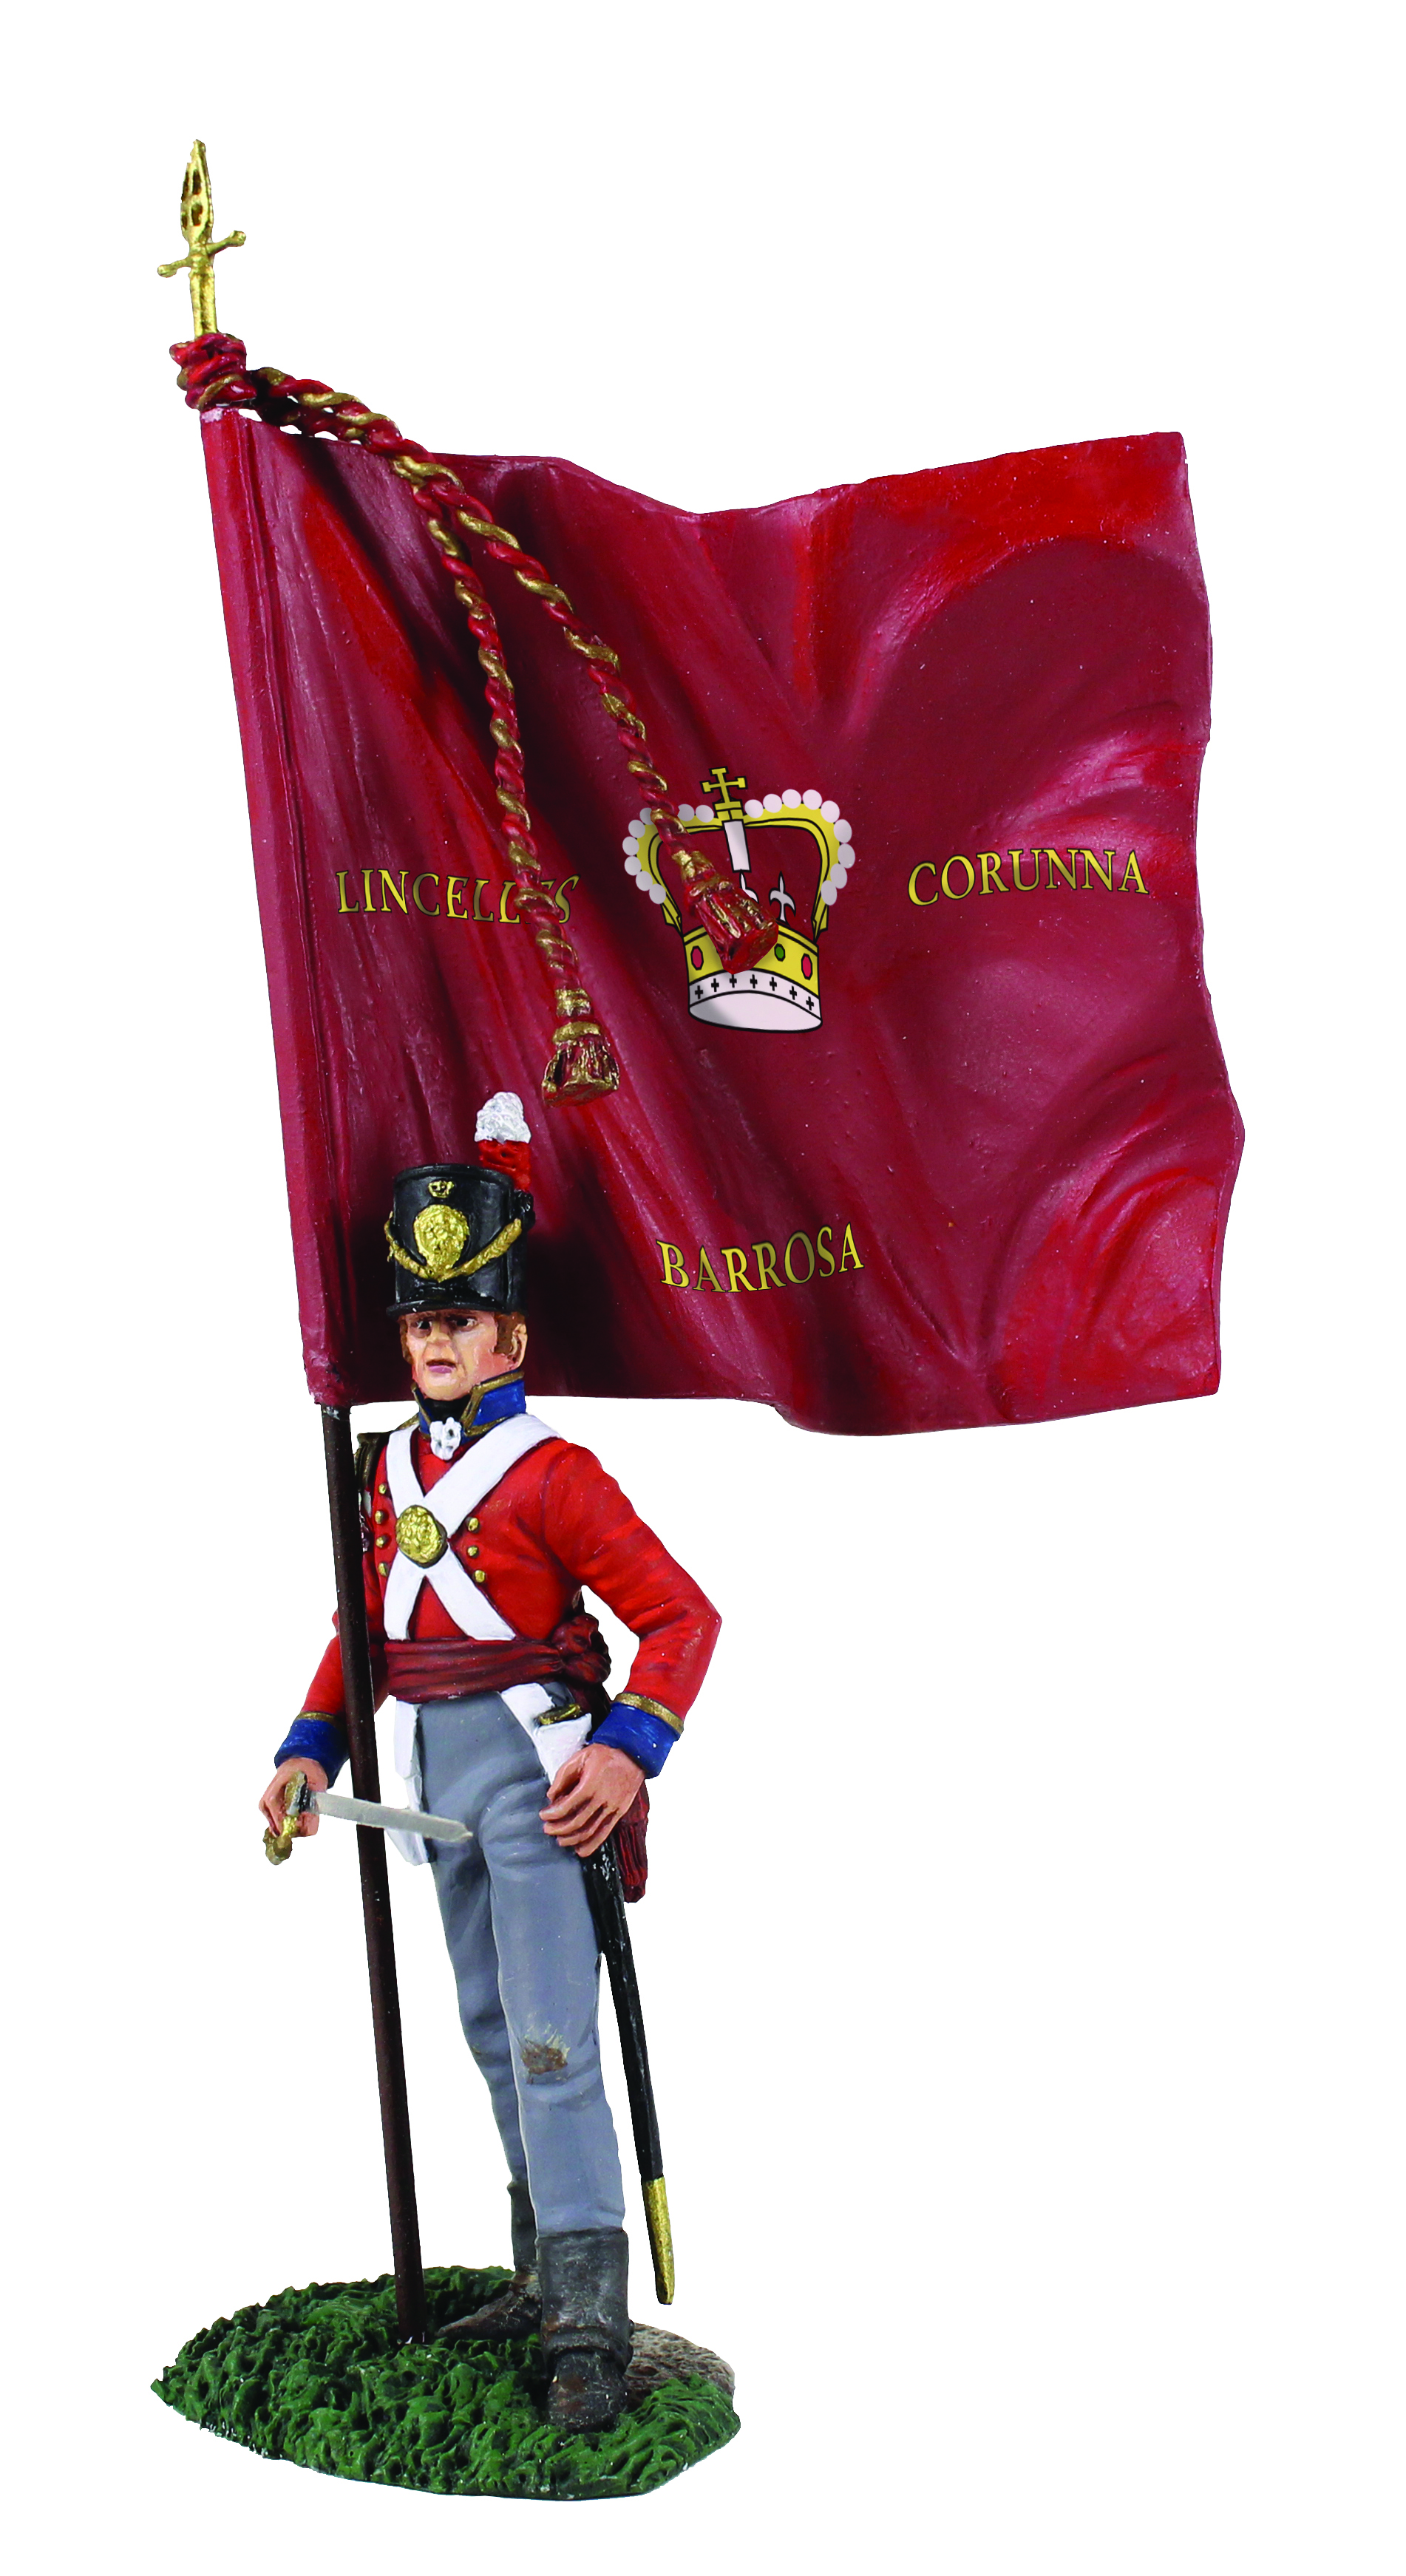 British 1st Foot Guard Battalion Company Ensign with King's Colour No.2